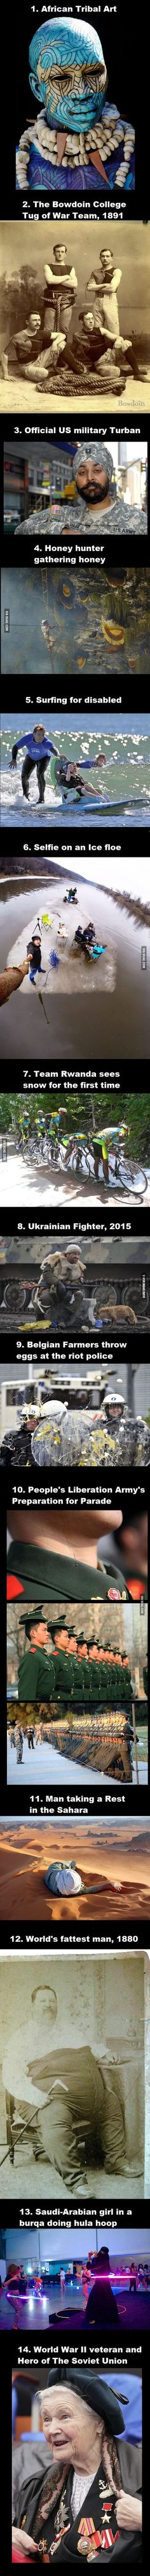 Collection of interesting pictures I found over the years, Part 29: People IV - 9GAG